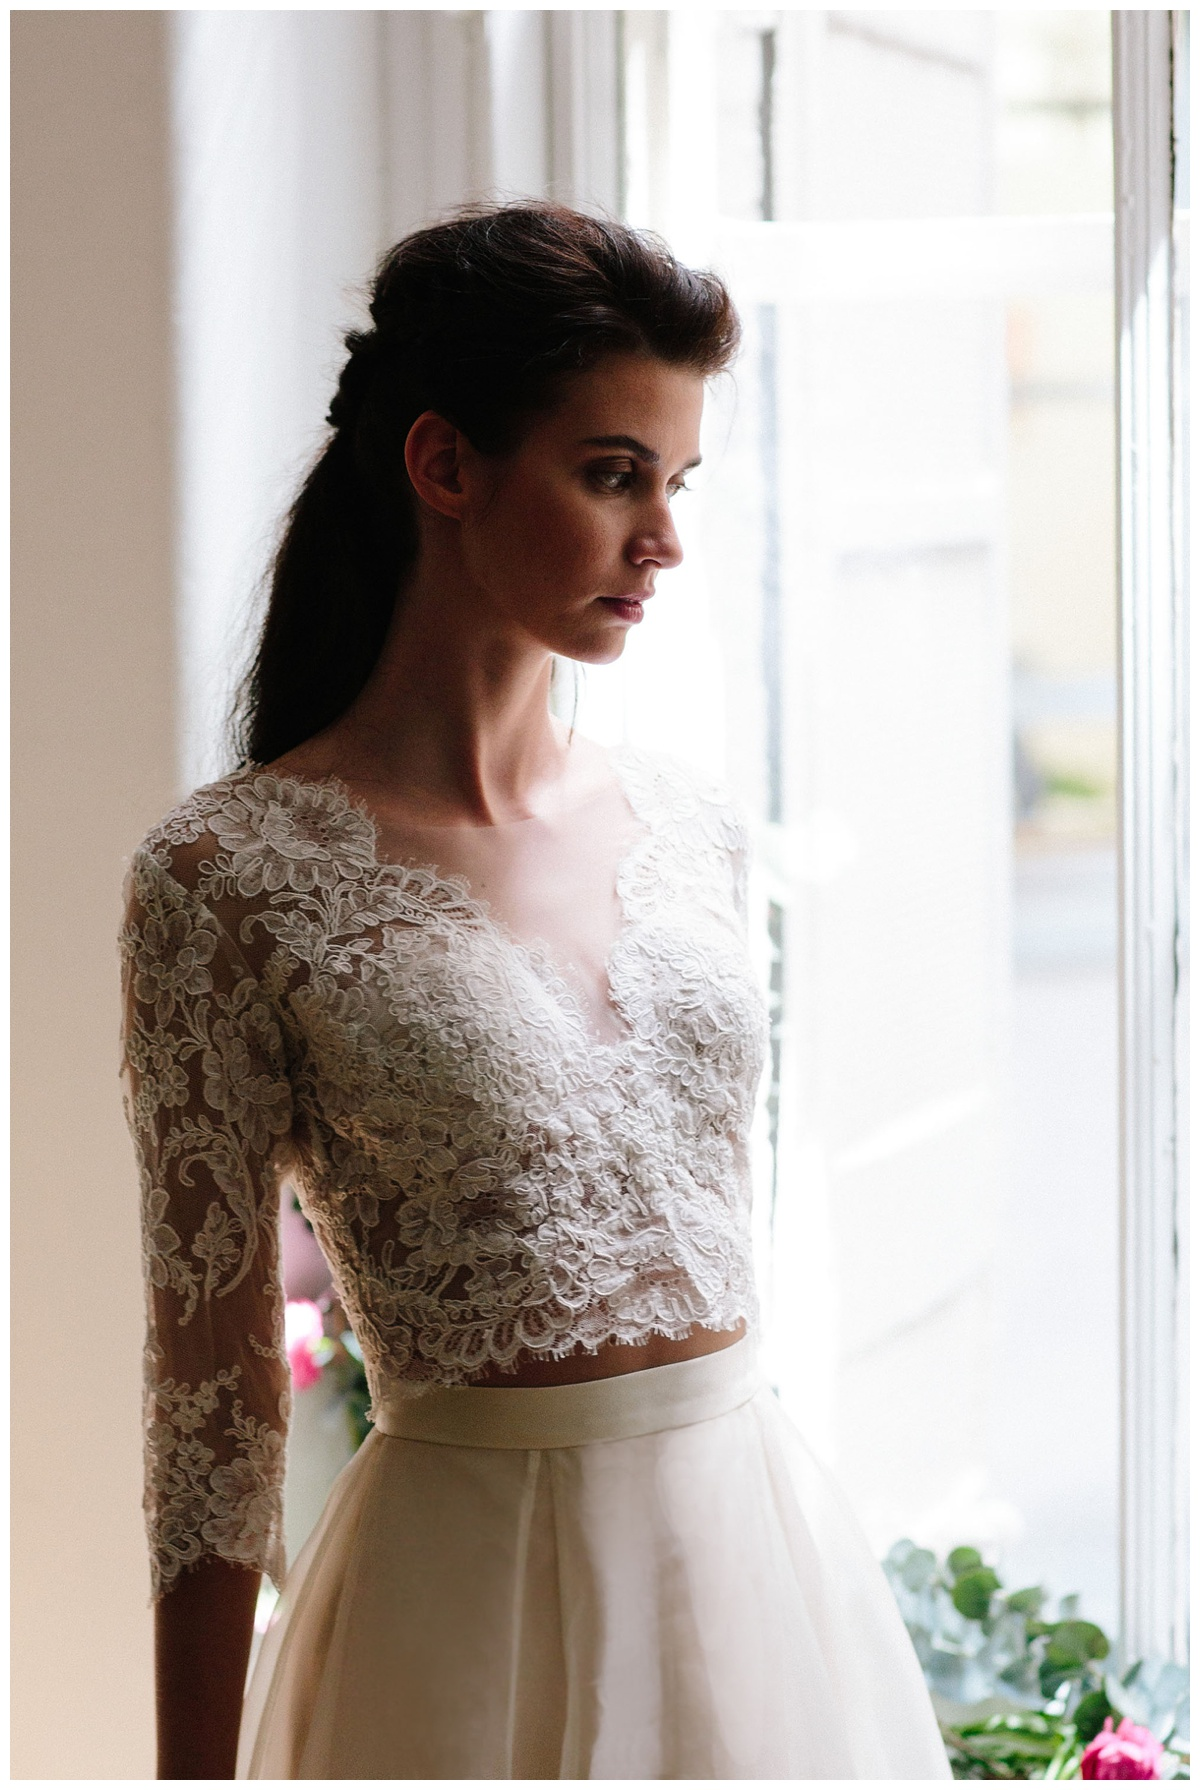 sustainable wedding dress and eco friendly option for brides who want green wedding inspo